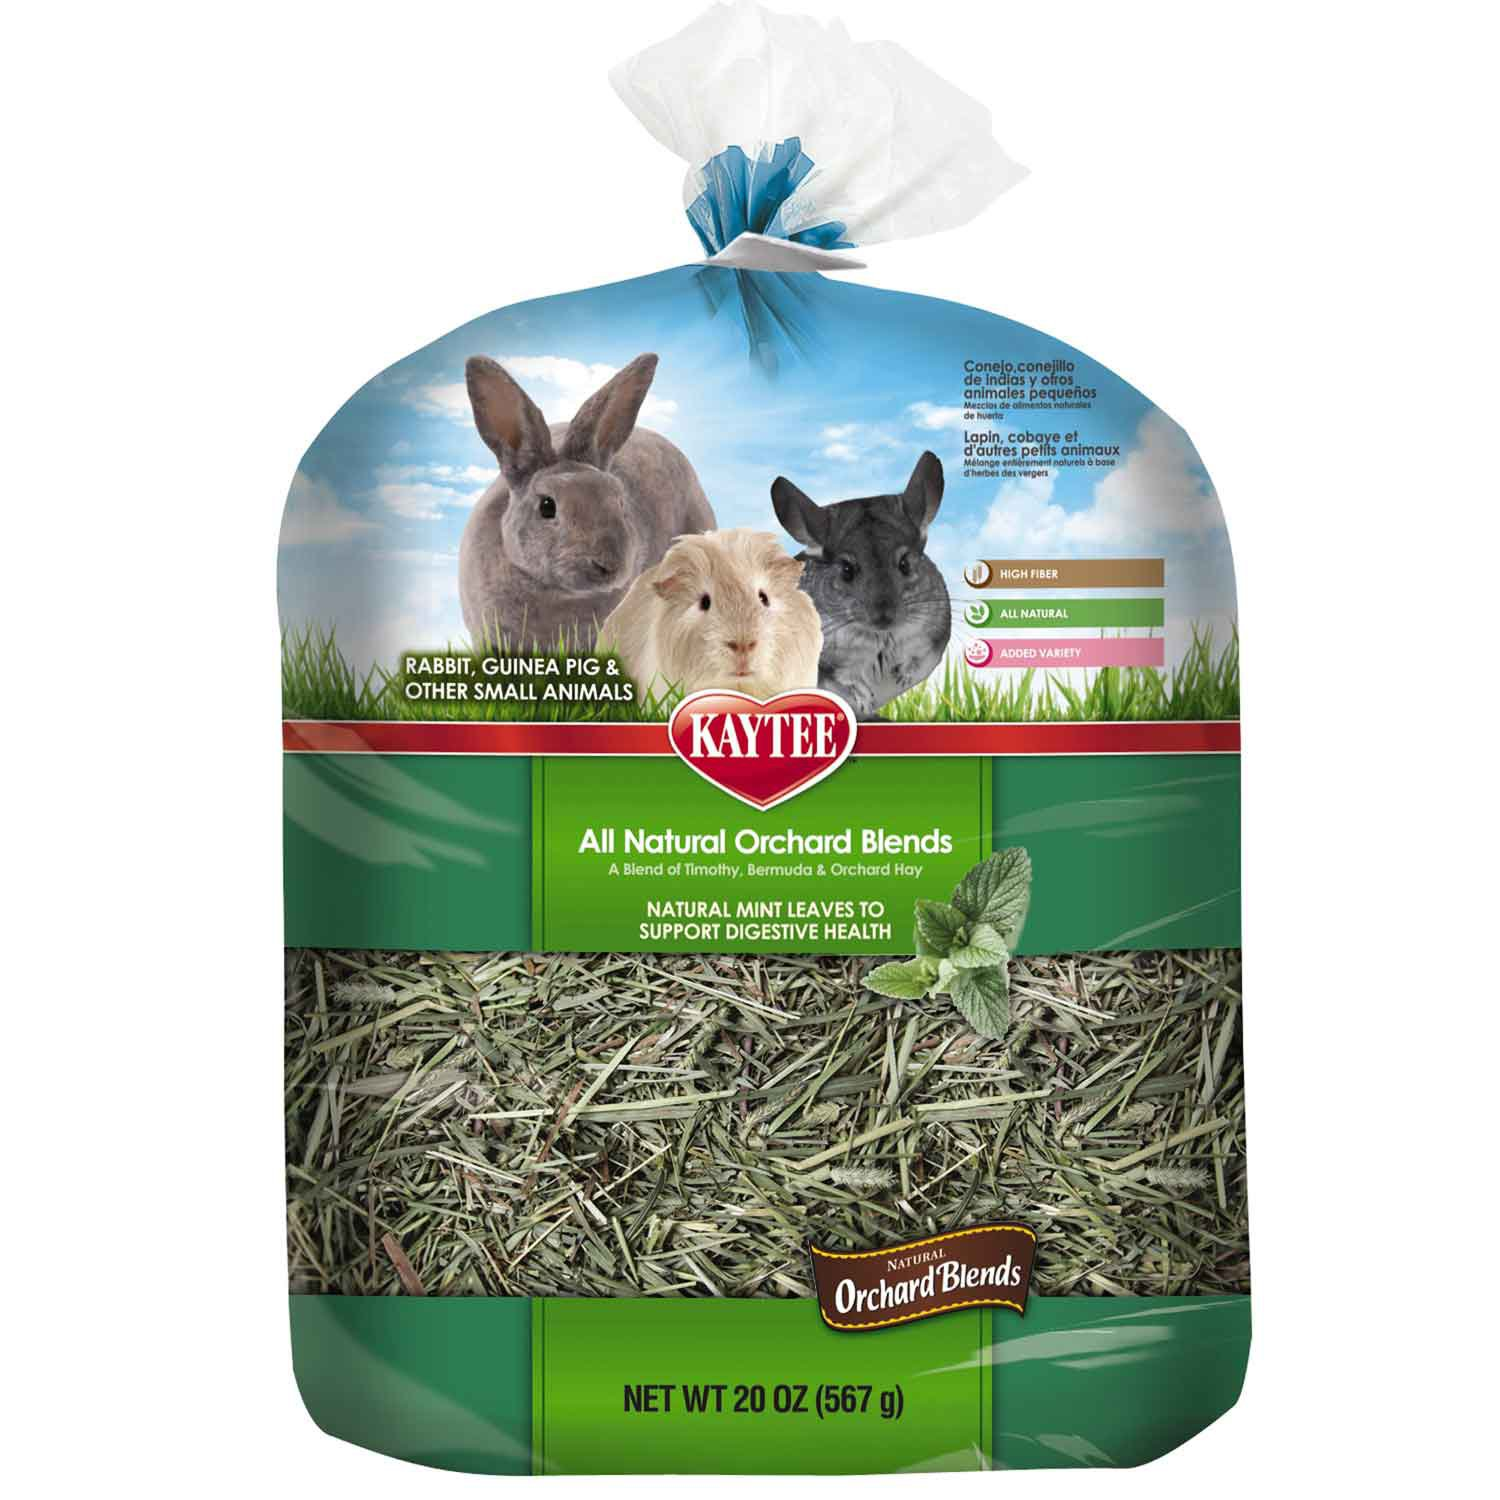 Kaytee All Natural Orchard Blends Digestive Health Hay for Small Animals